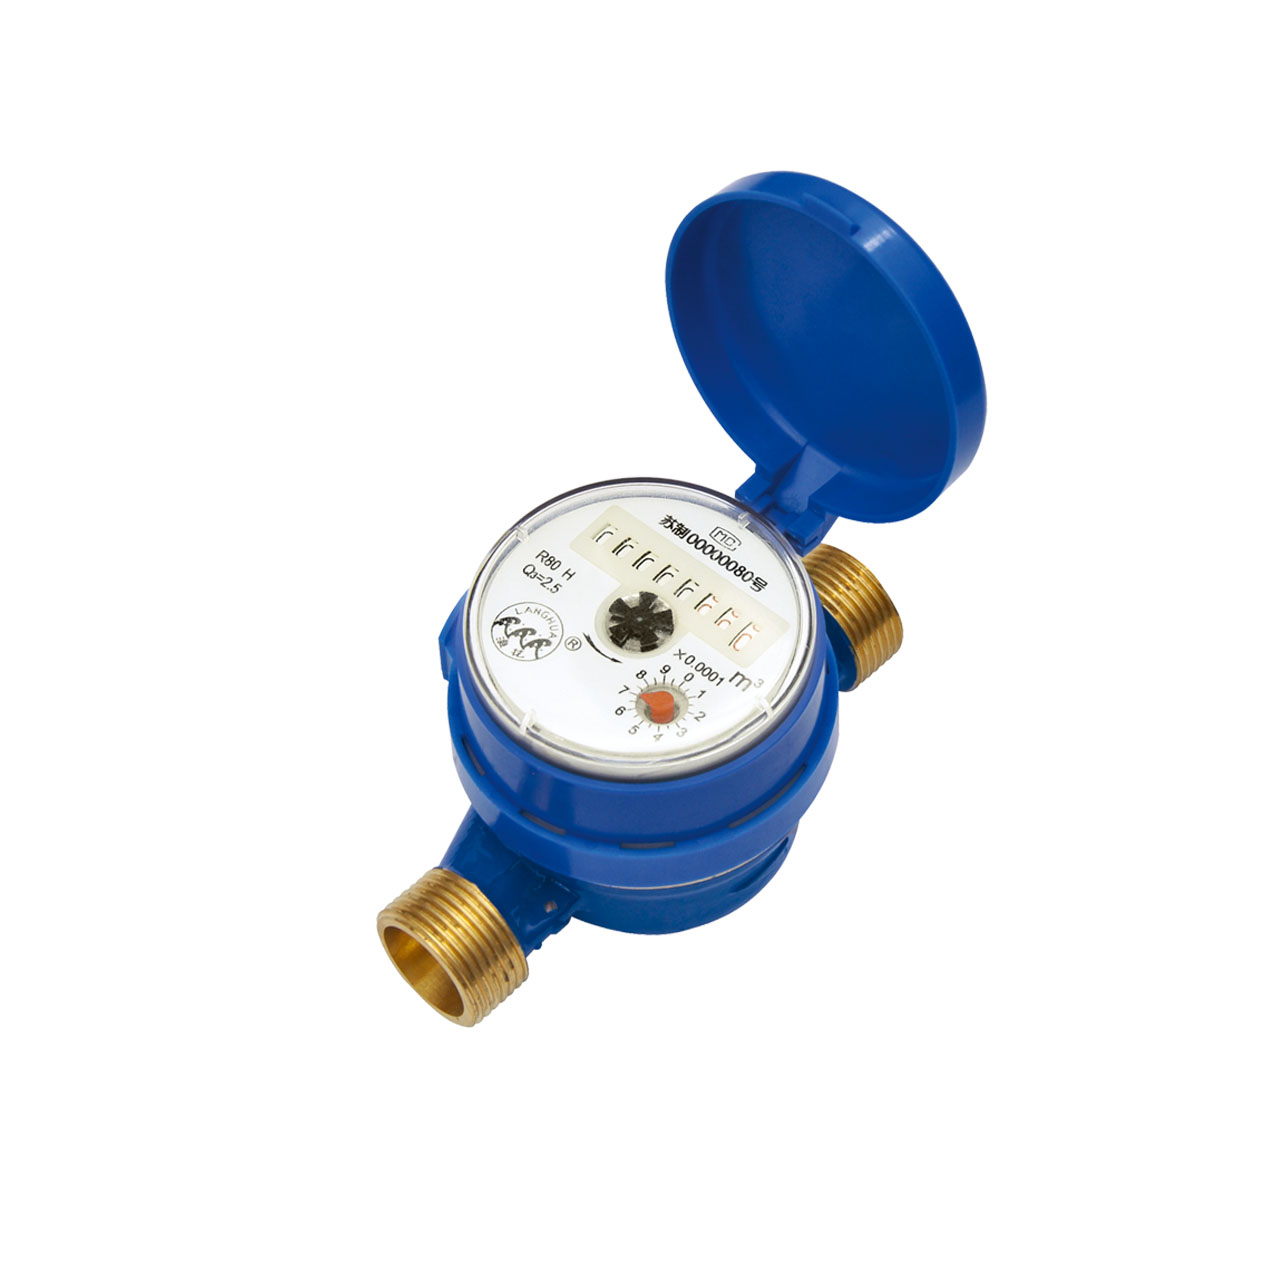 Intelligent water meter